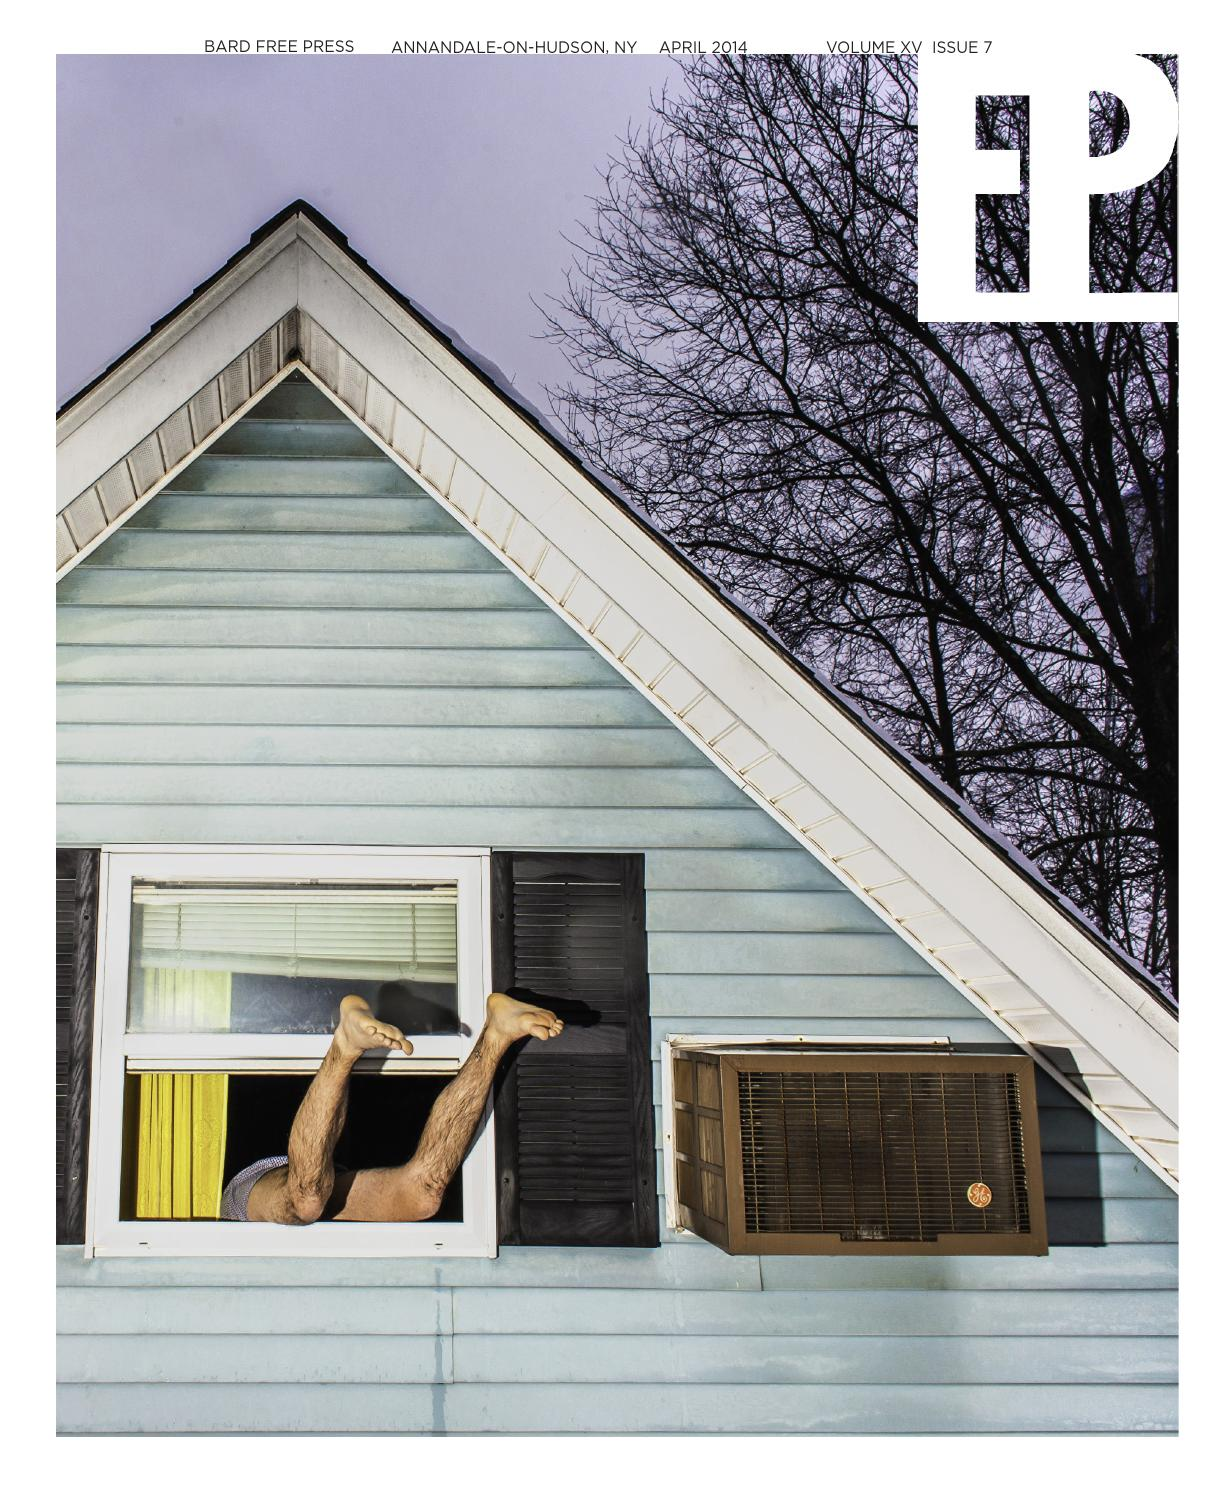 APRIL 2014 by Bard Free Press - issuu 0068173f3